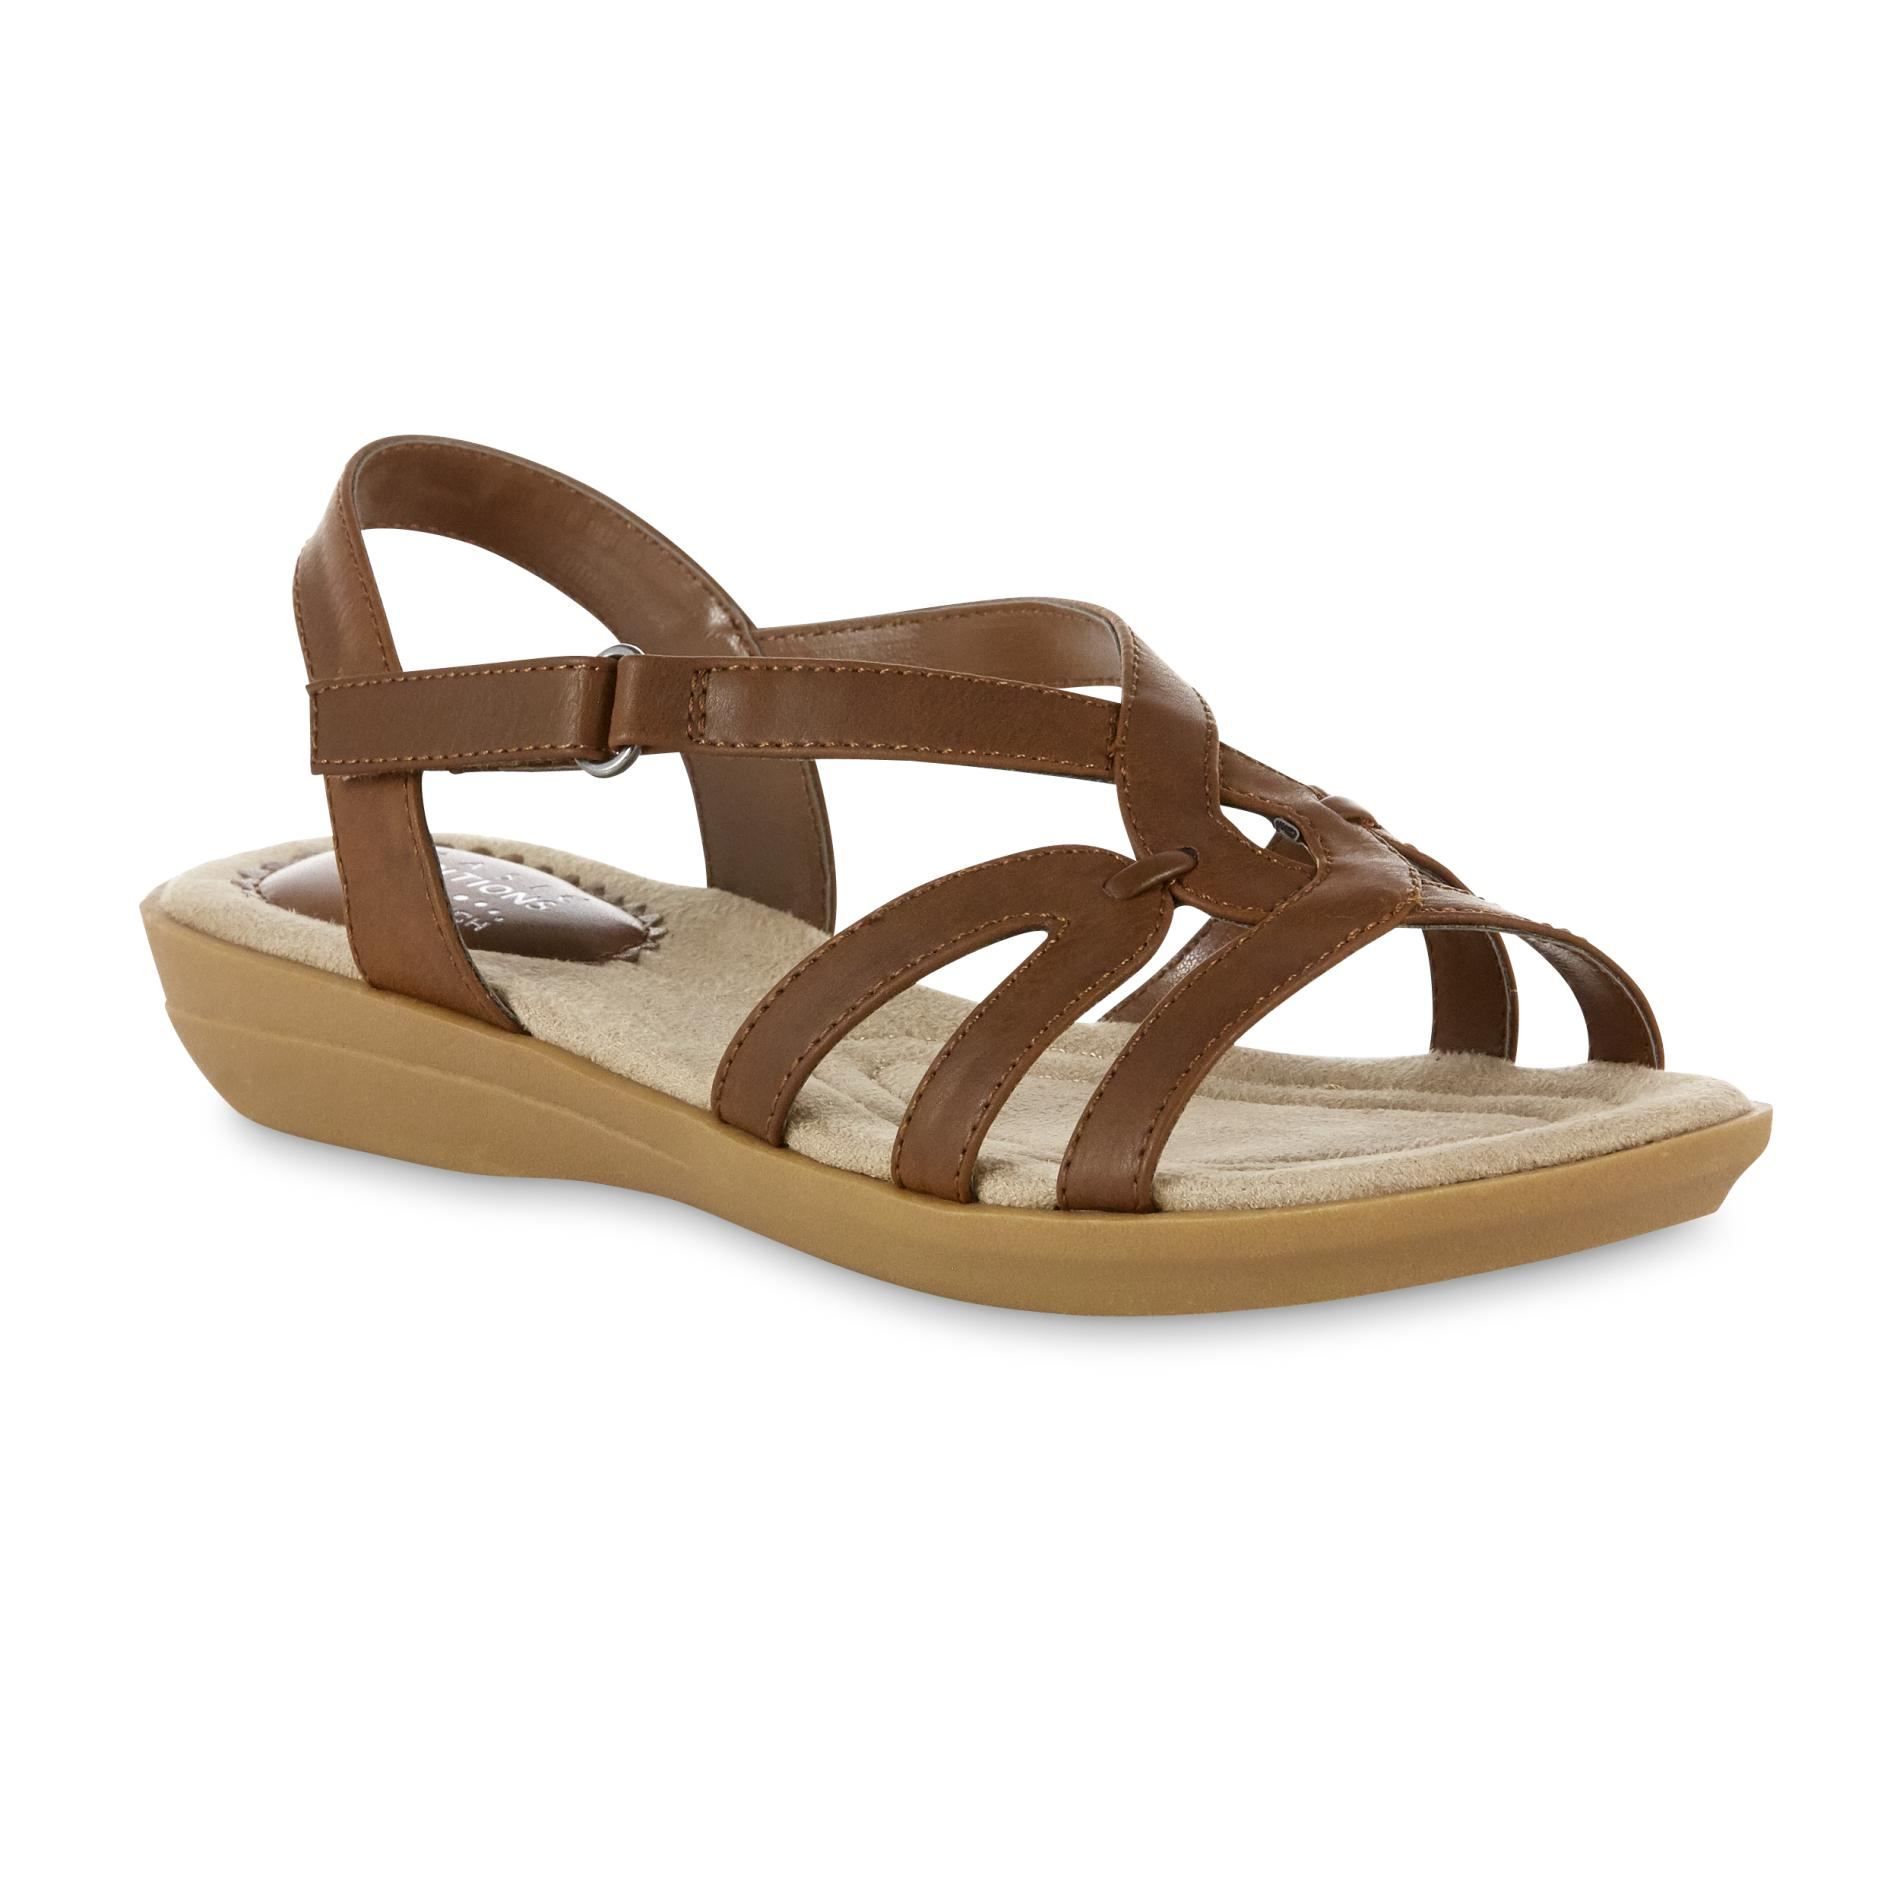 womens sandals basic editions womenu0027s mikayla wide sling-back sandal - brown wlczpvx